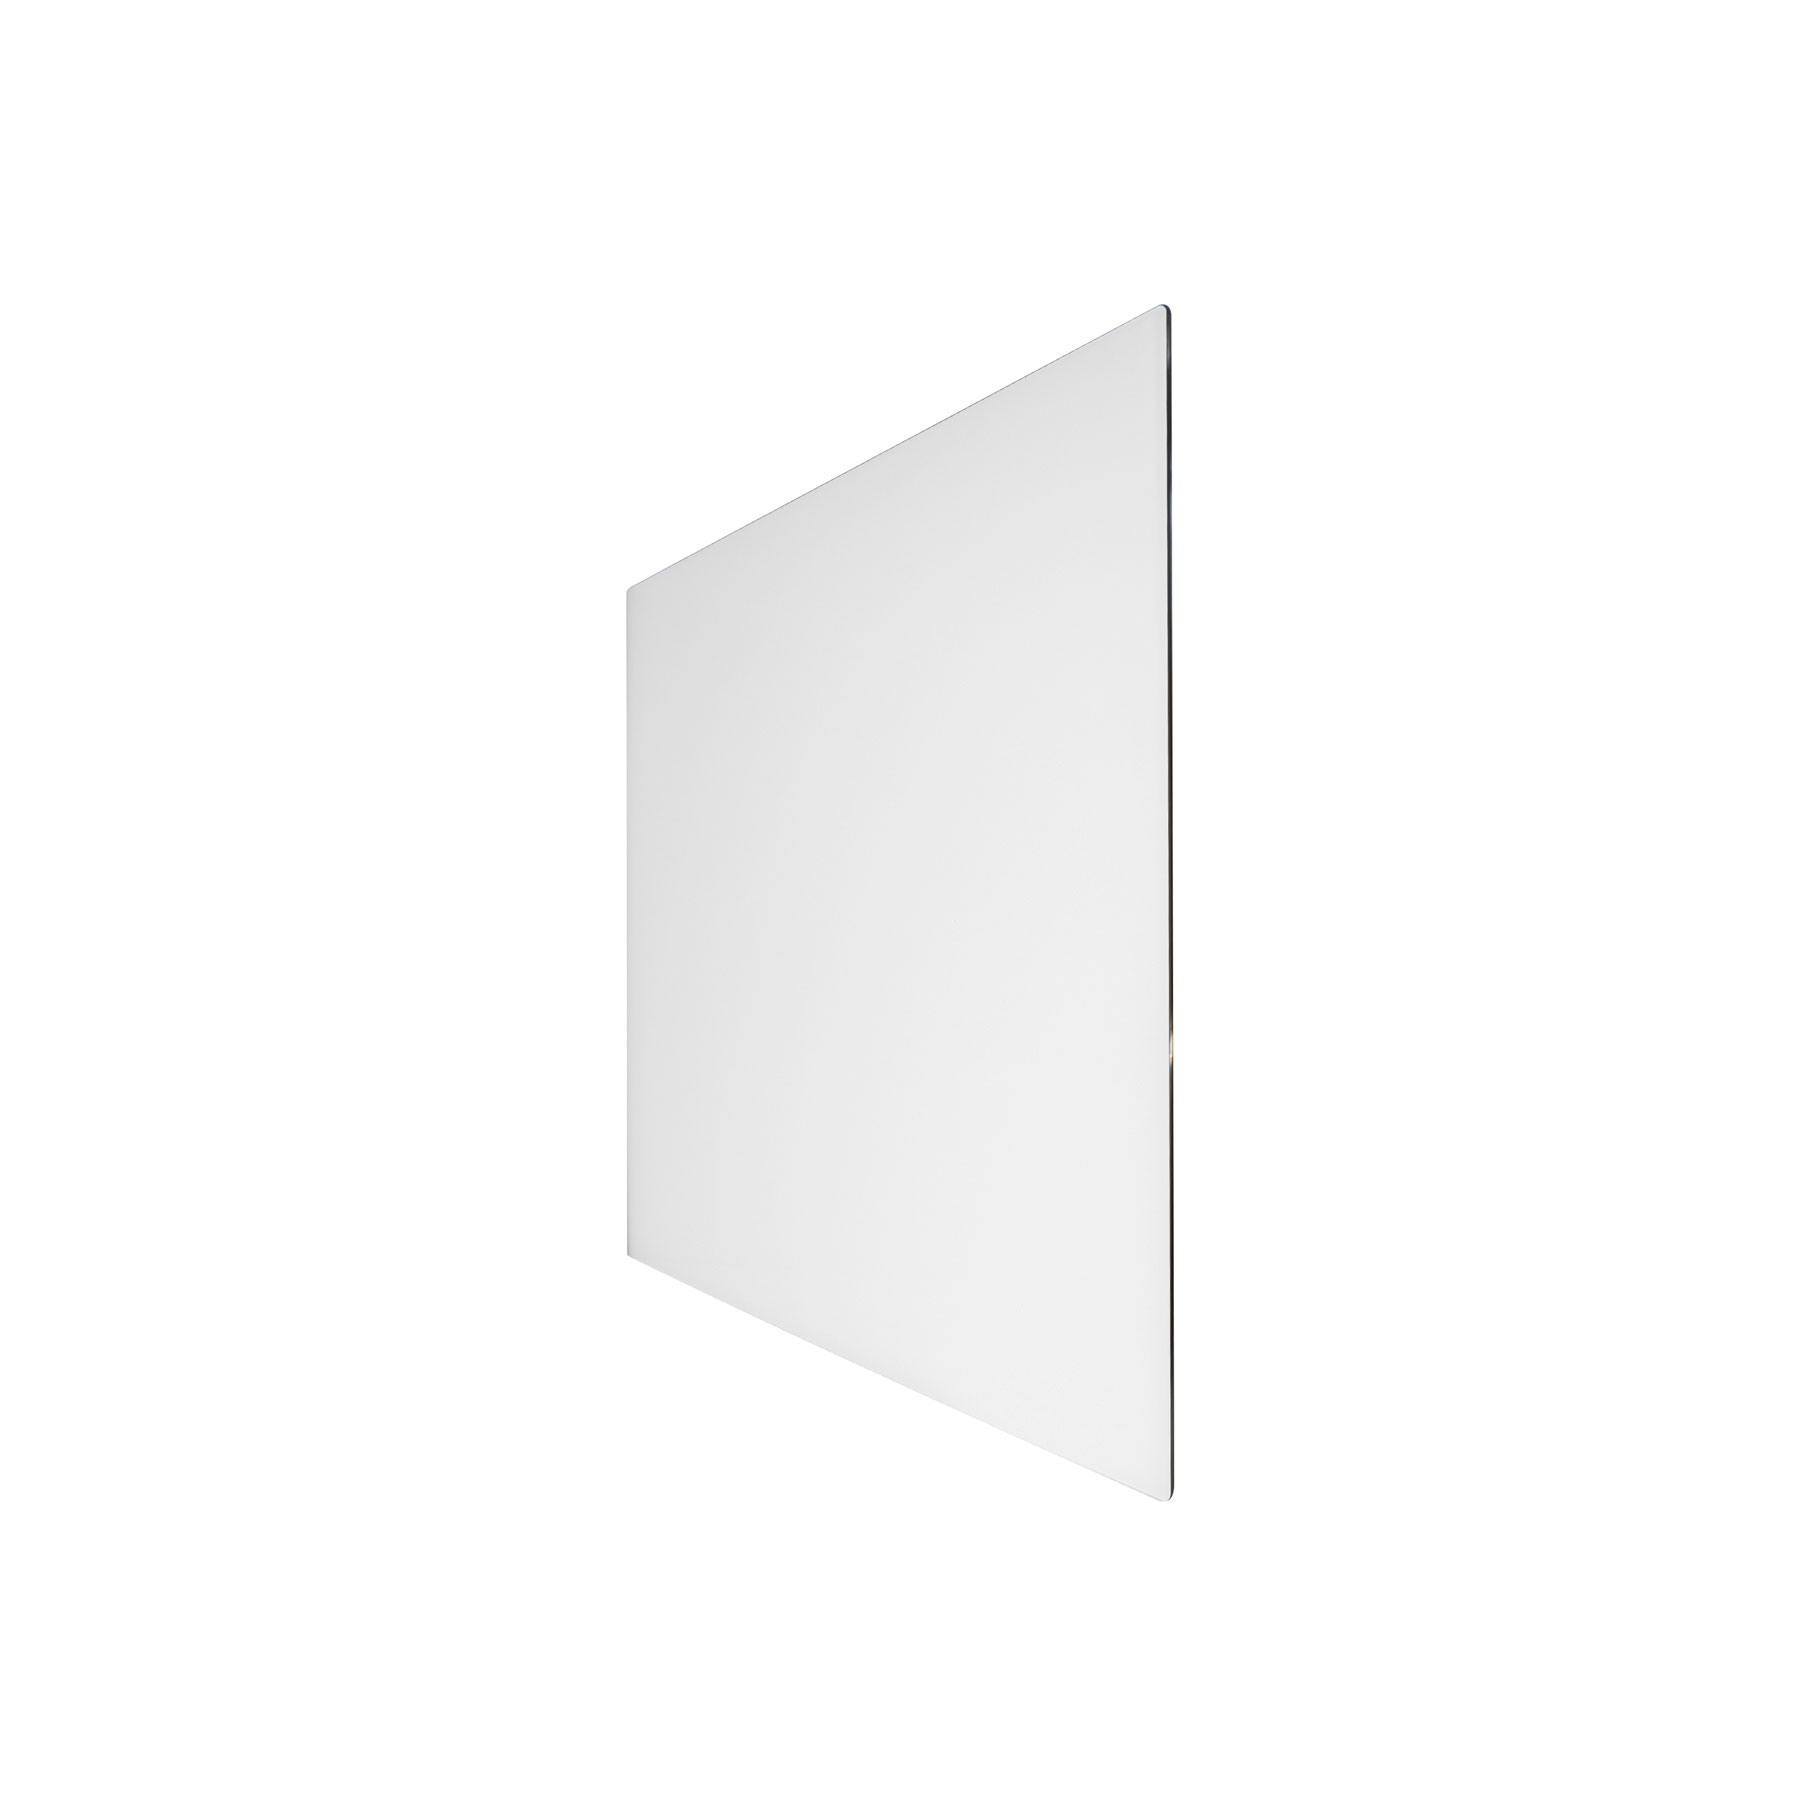 Technotherm Design Glass - White 690mm